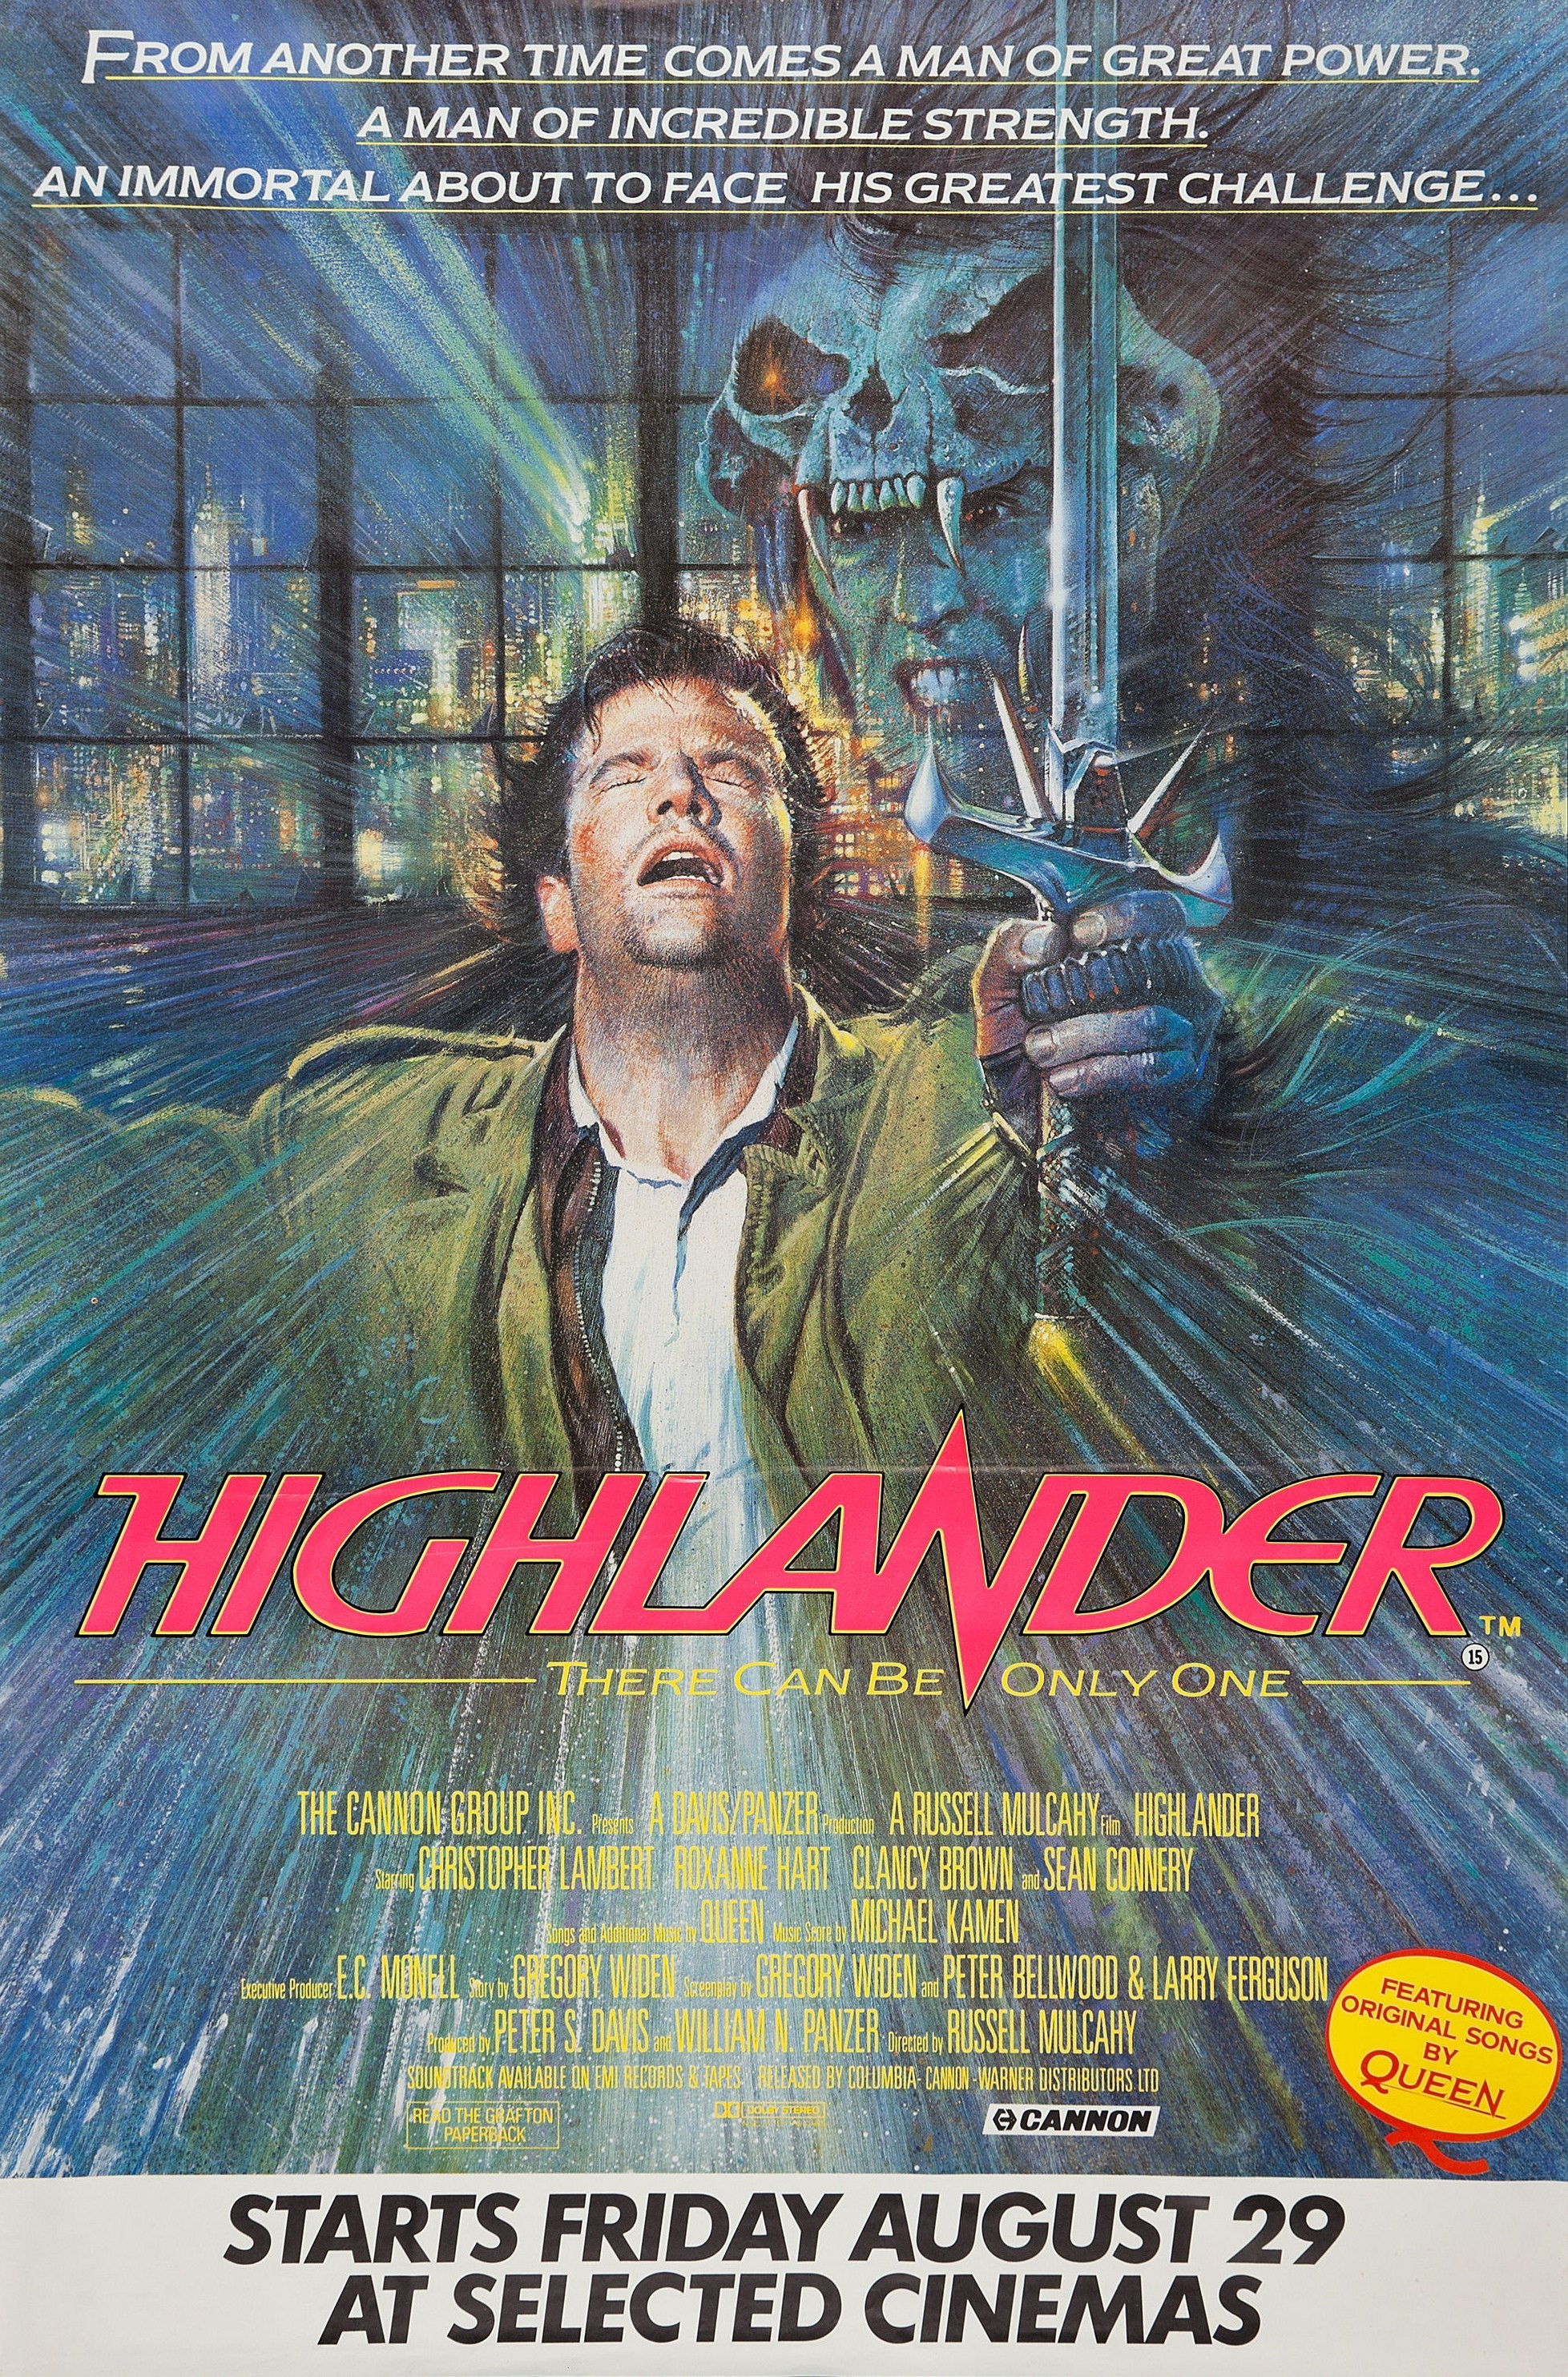 Highlander Quotes Highlander 1986 News Clips Quotes Trivia Easter Eggs